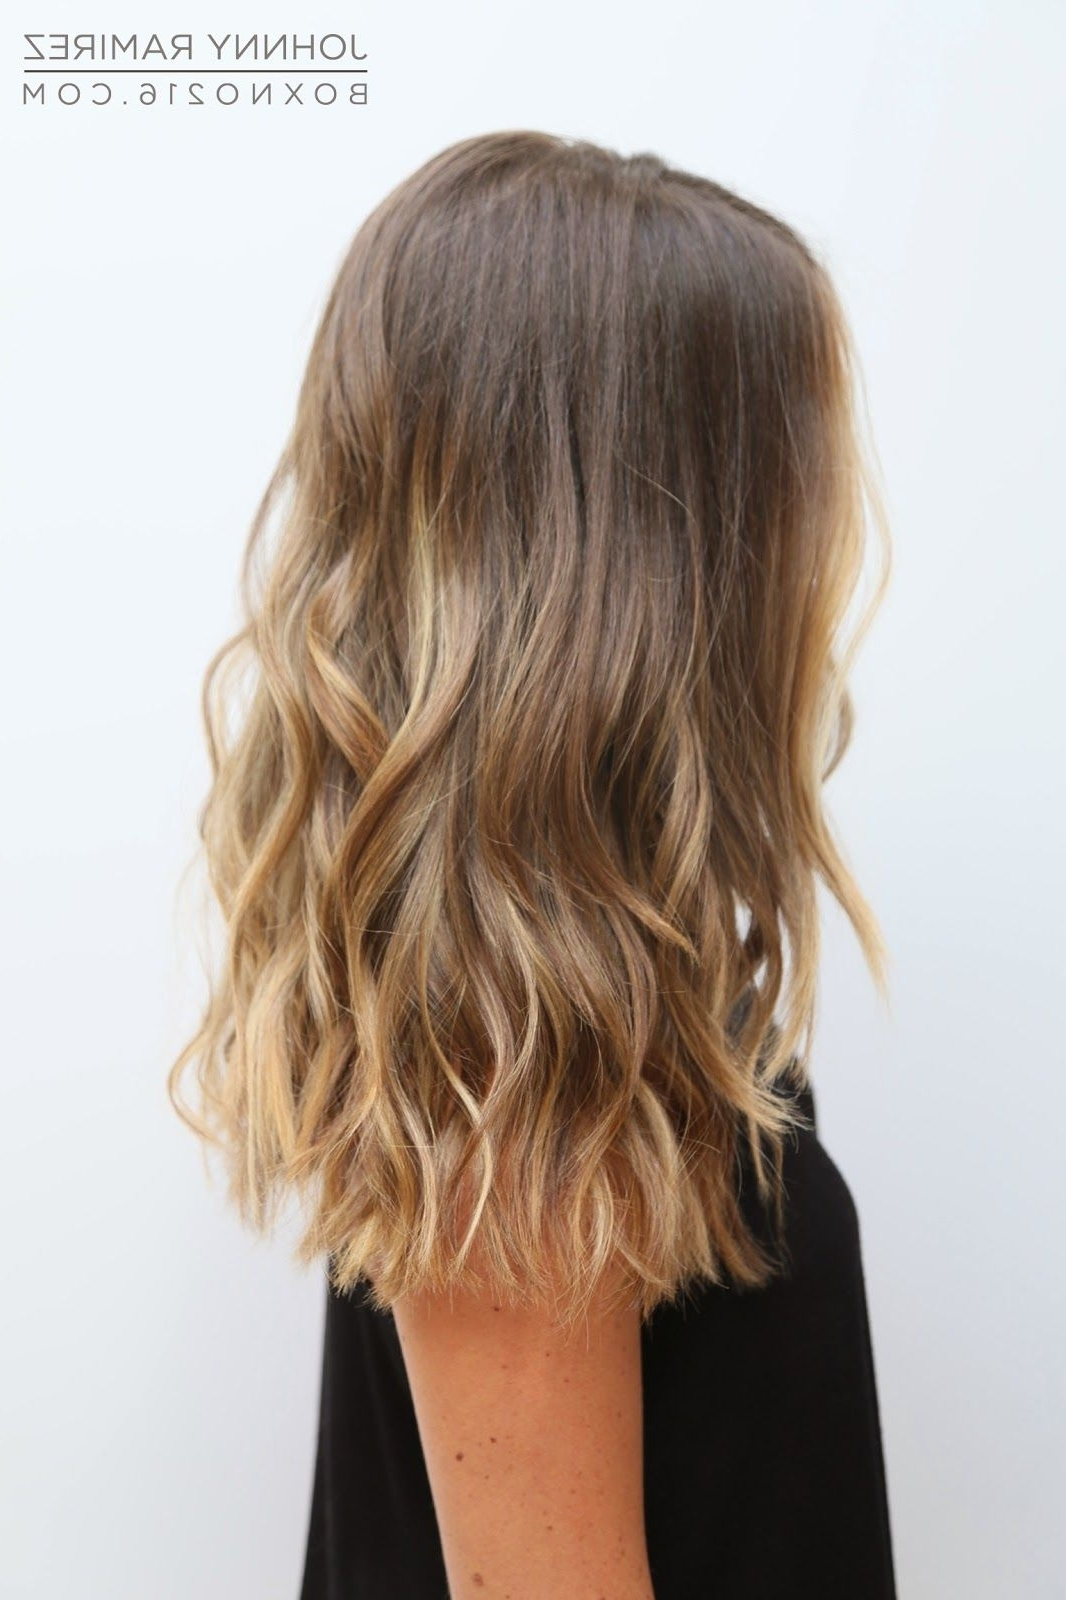 Tran Salon Intended For Latest Long Bob Blonde Hairstyles With Babylights (View 14 of 20)